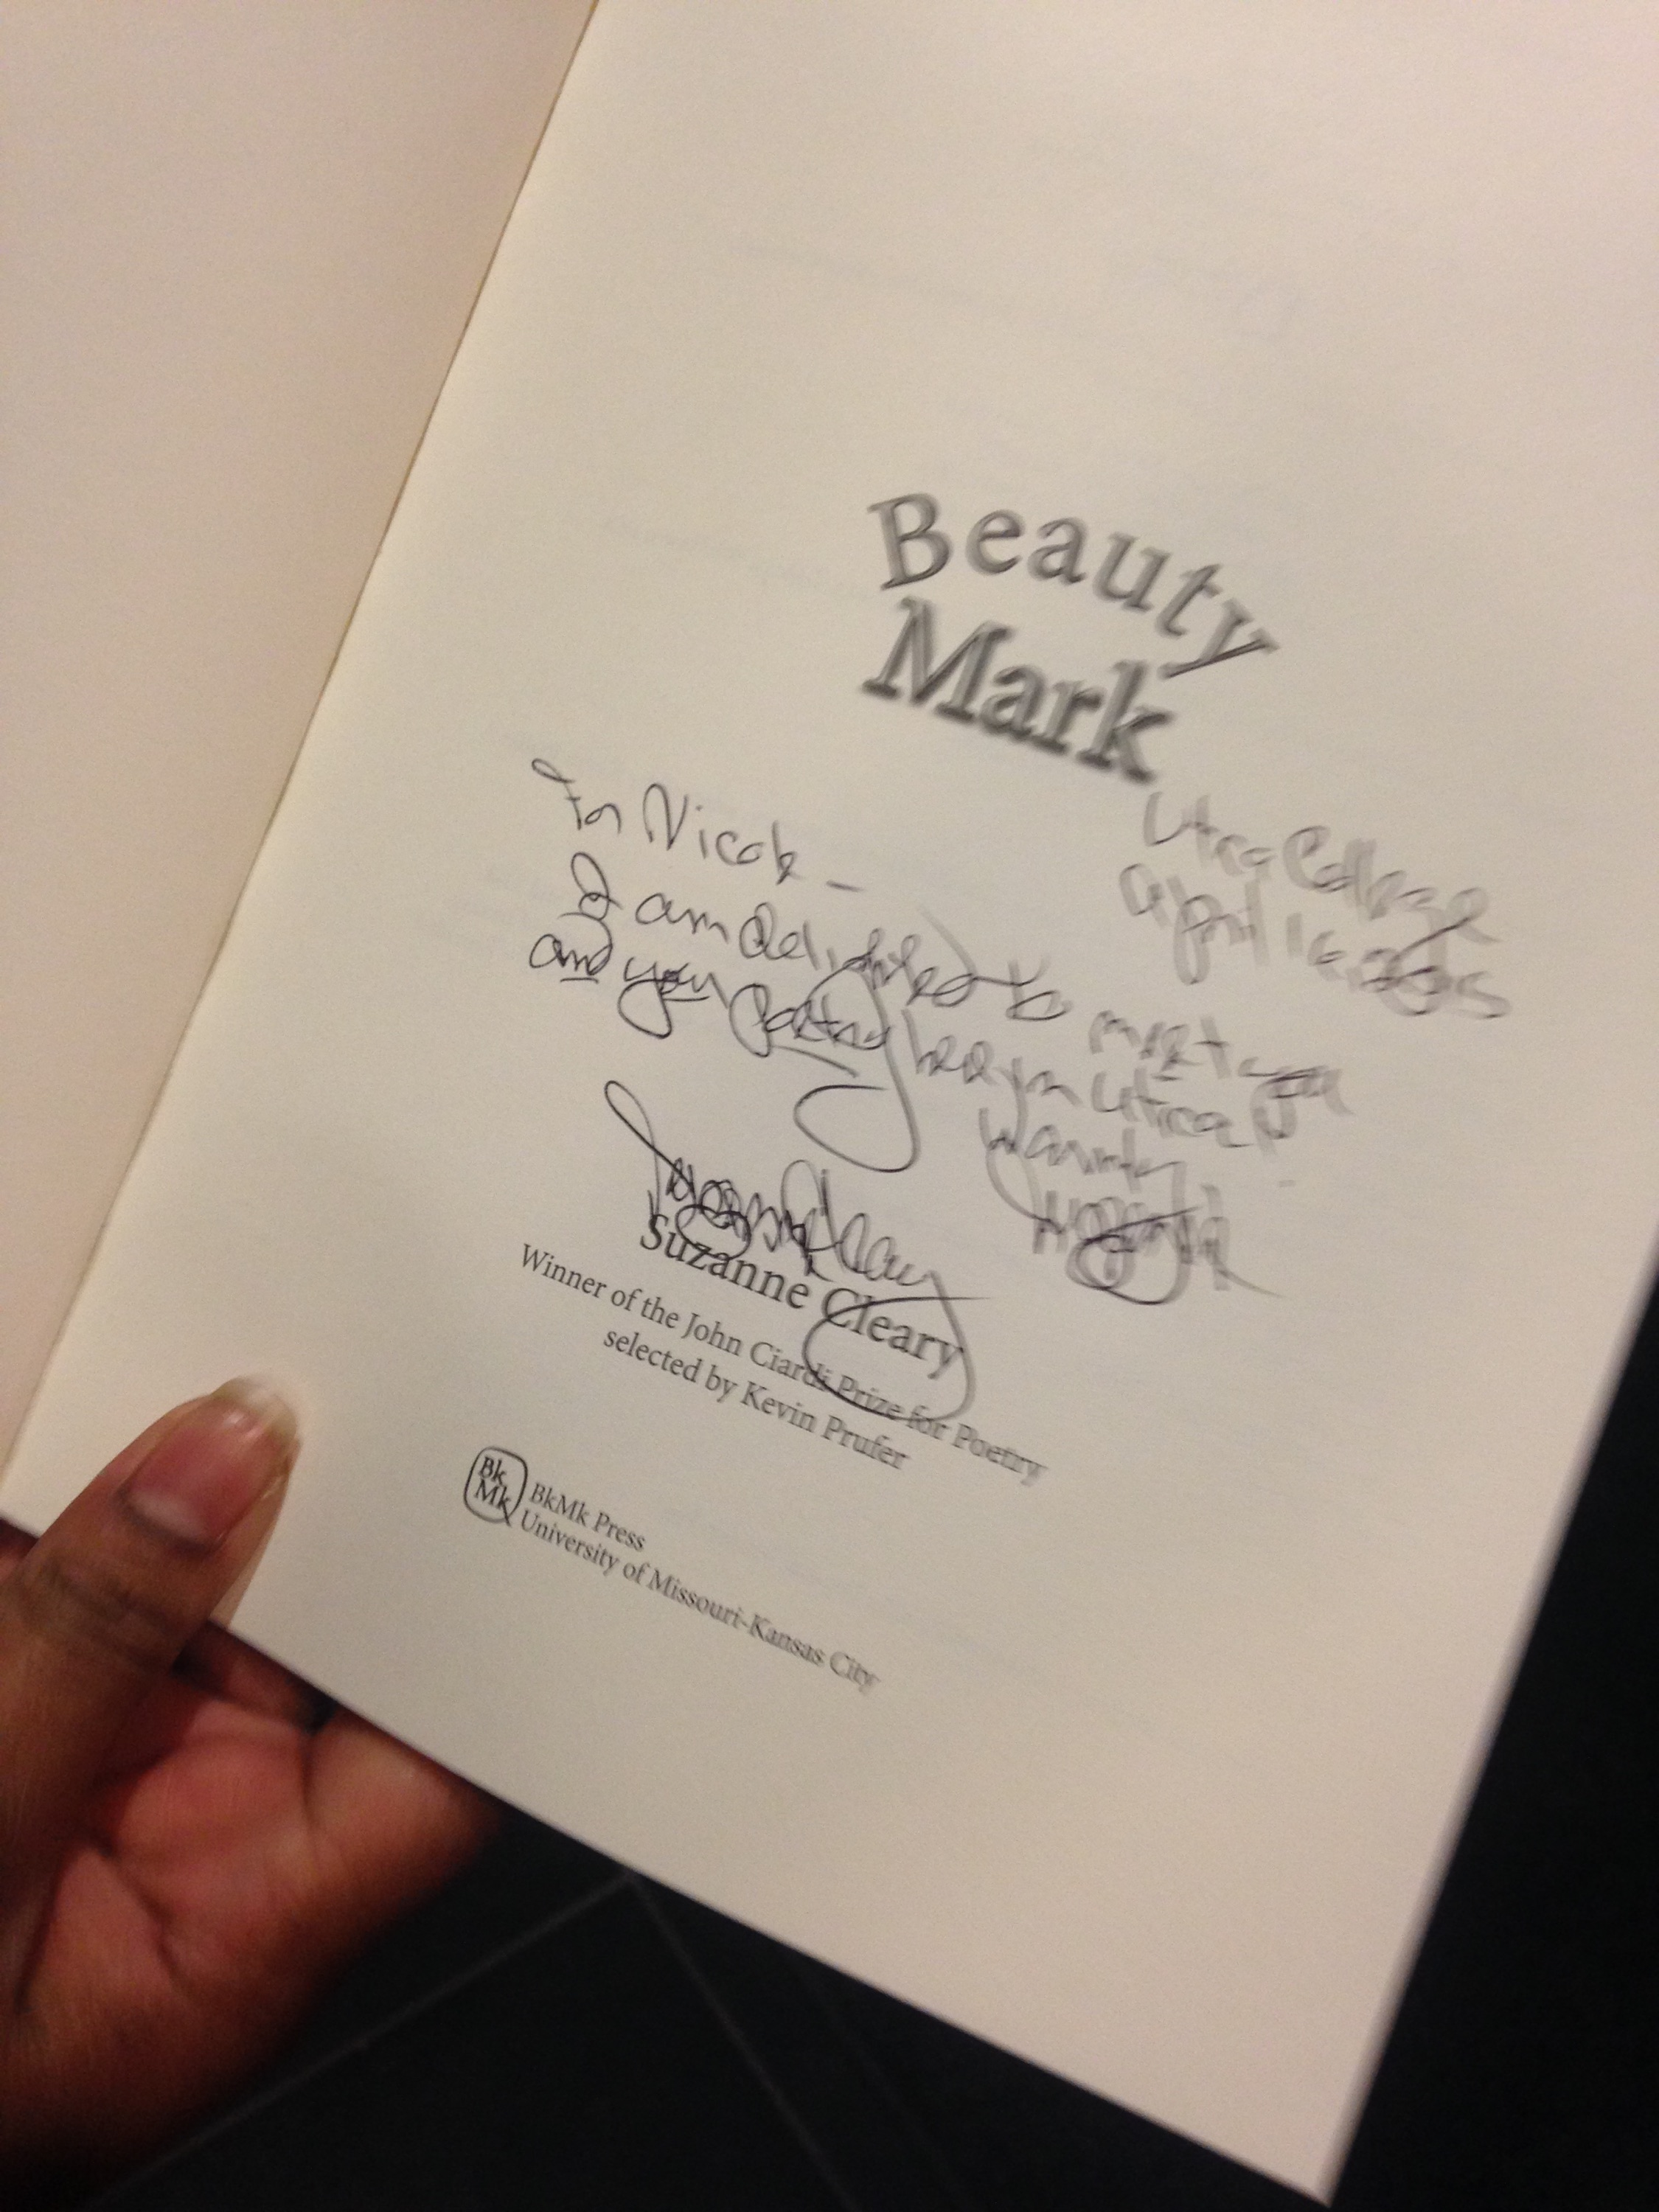 Another shot of Nicole's personalized copy of Beauty Mark.